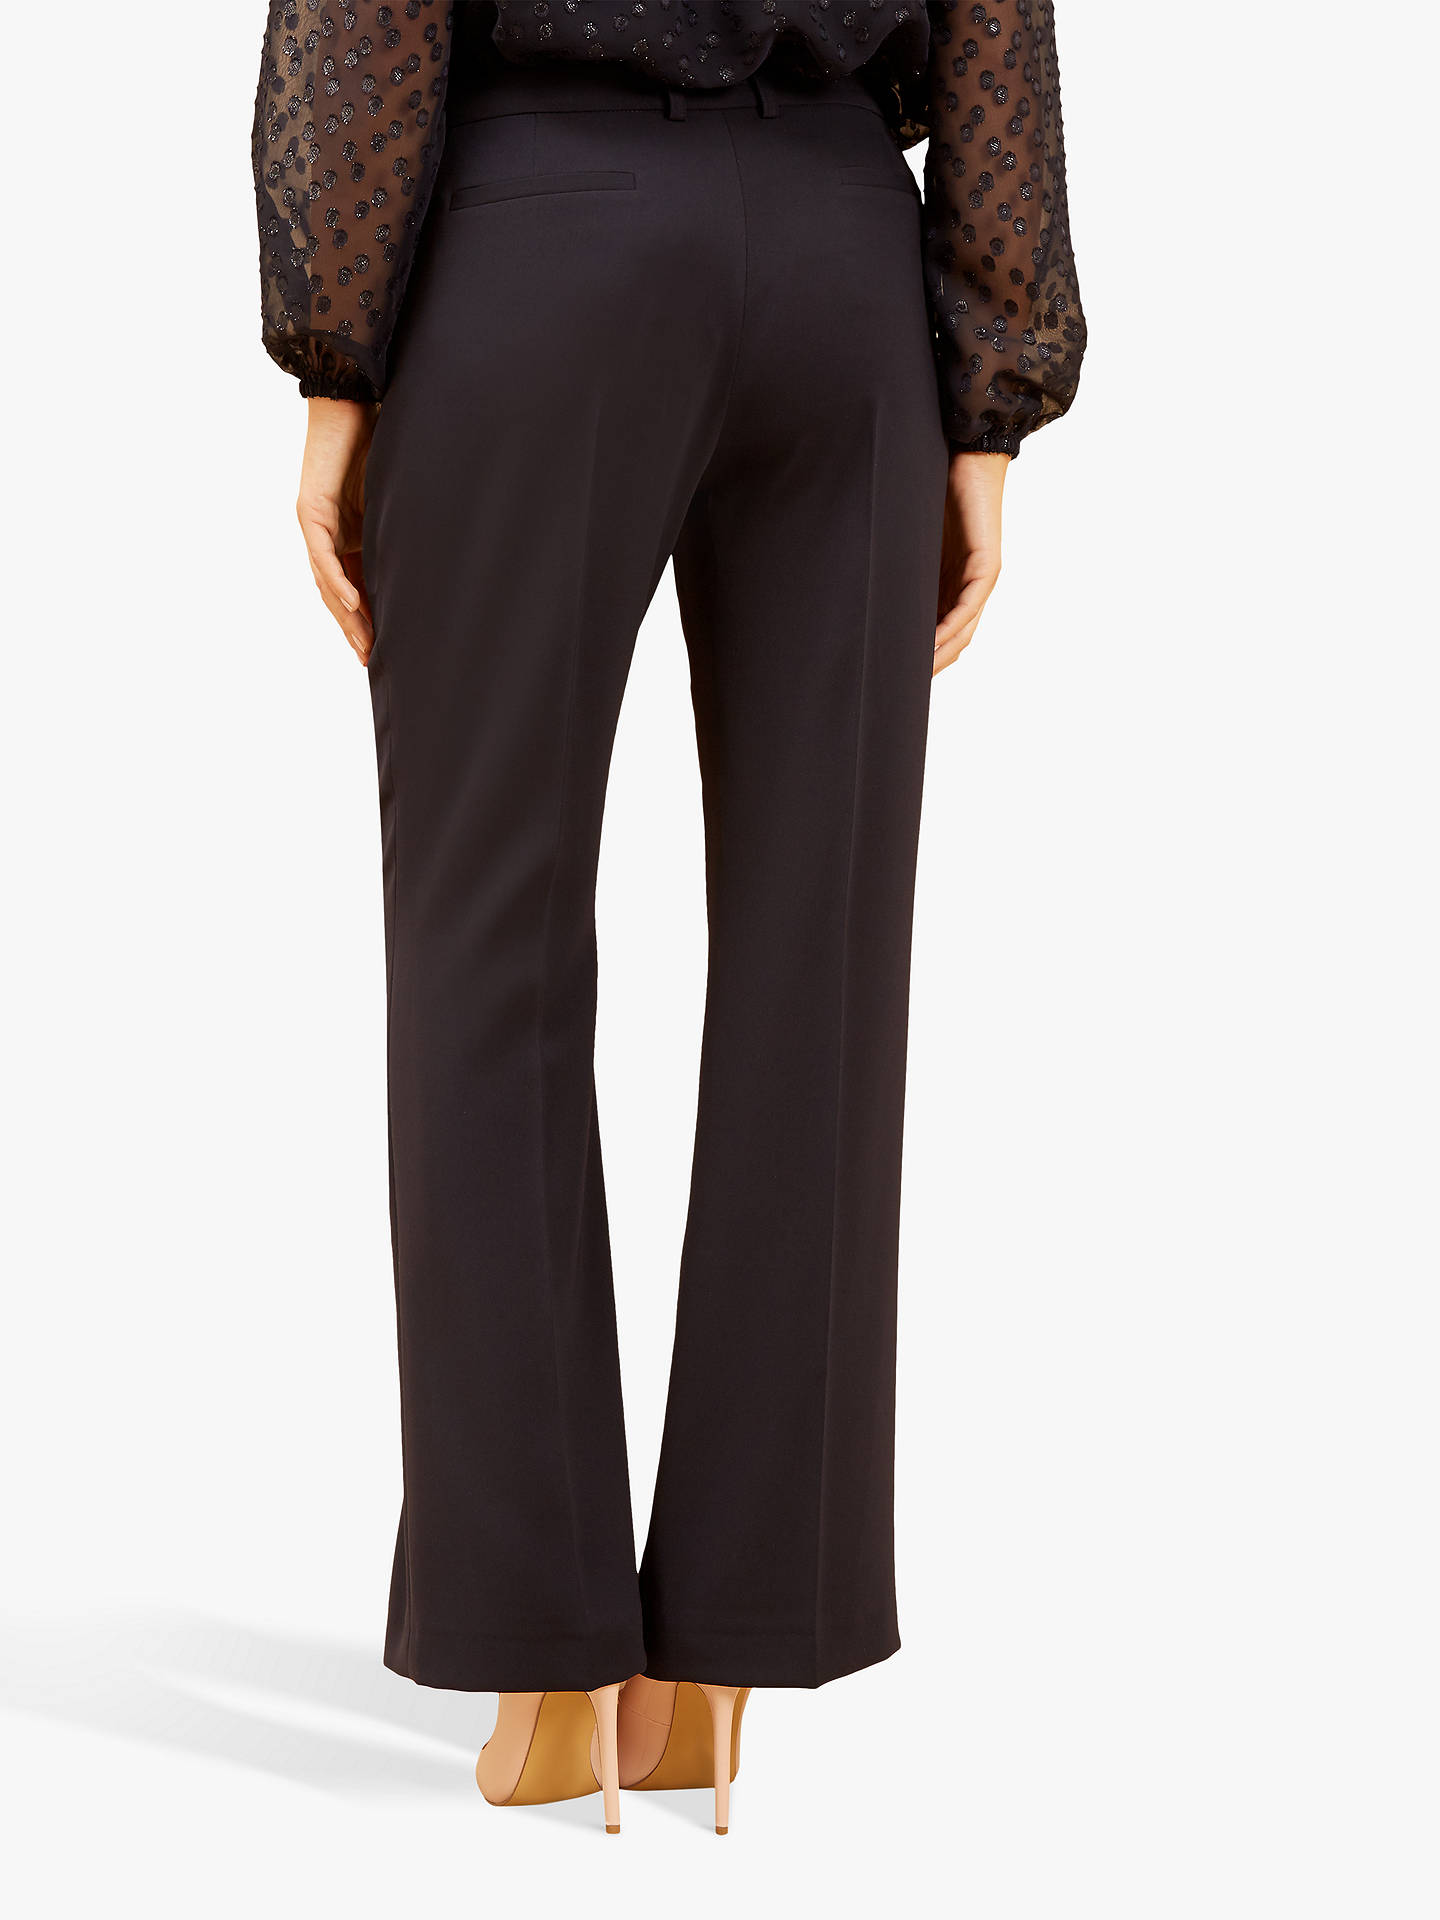 BuyFenn Wright Manson Petite Antonia Trousers, Navy, 10 Online at johnlewis.com